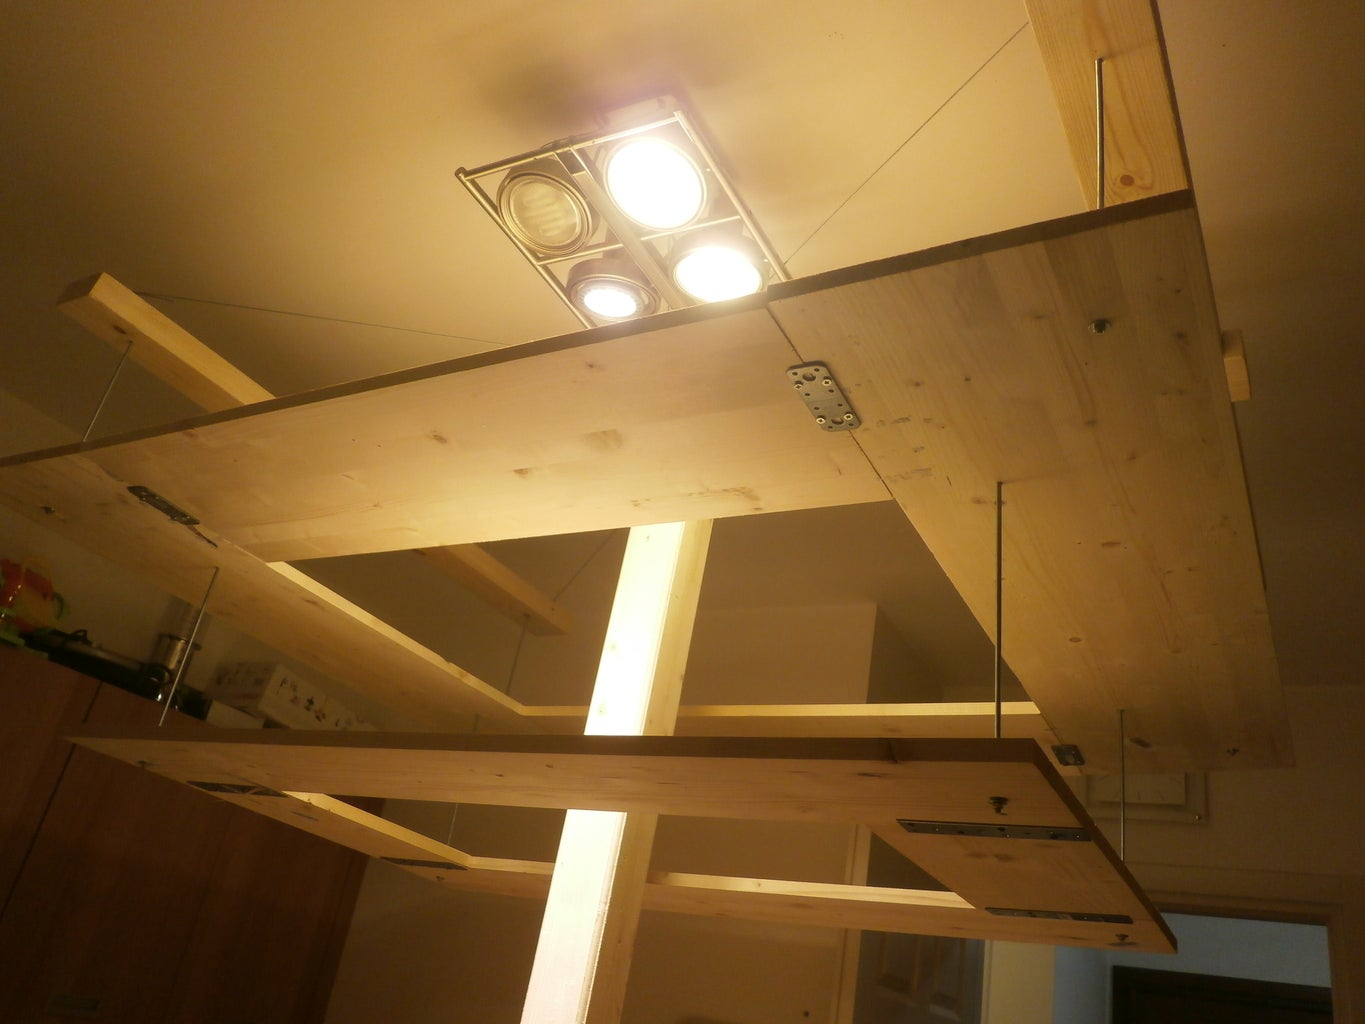 Step 6: Constructing and Hanging the Floating Shelves